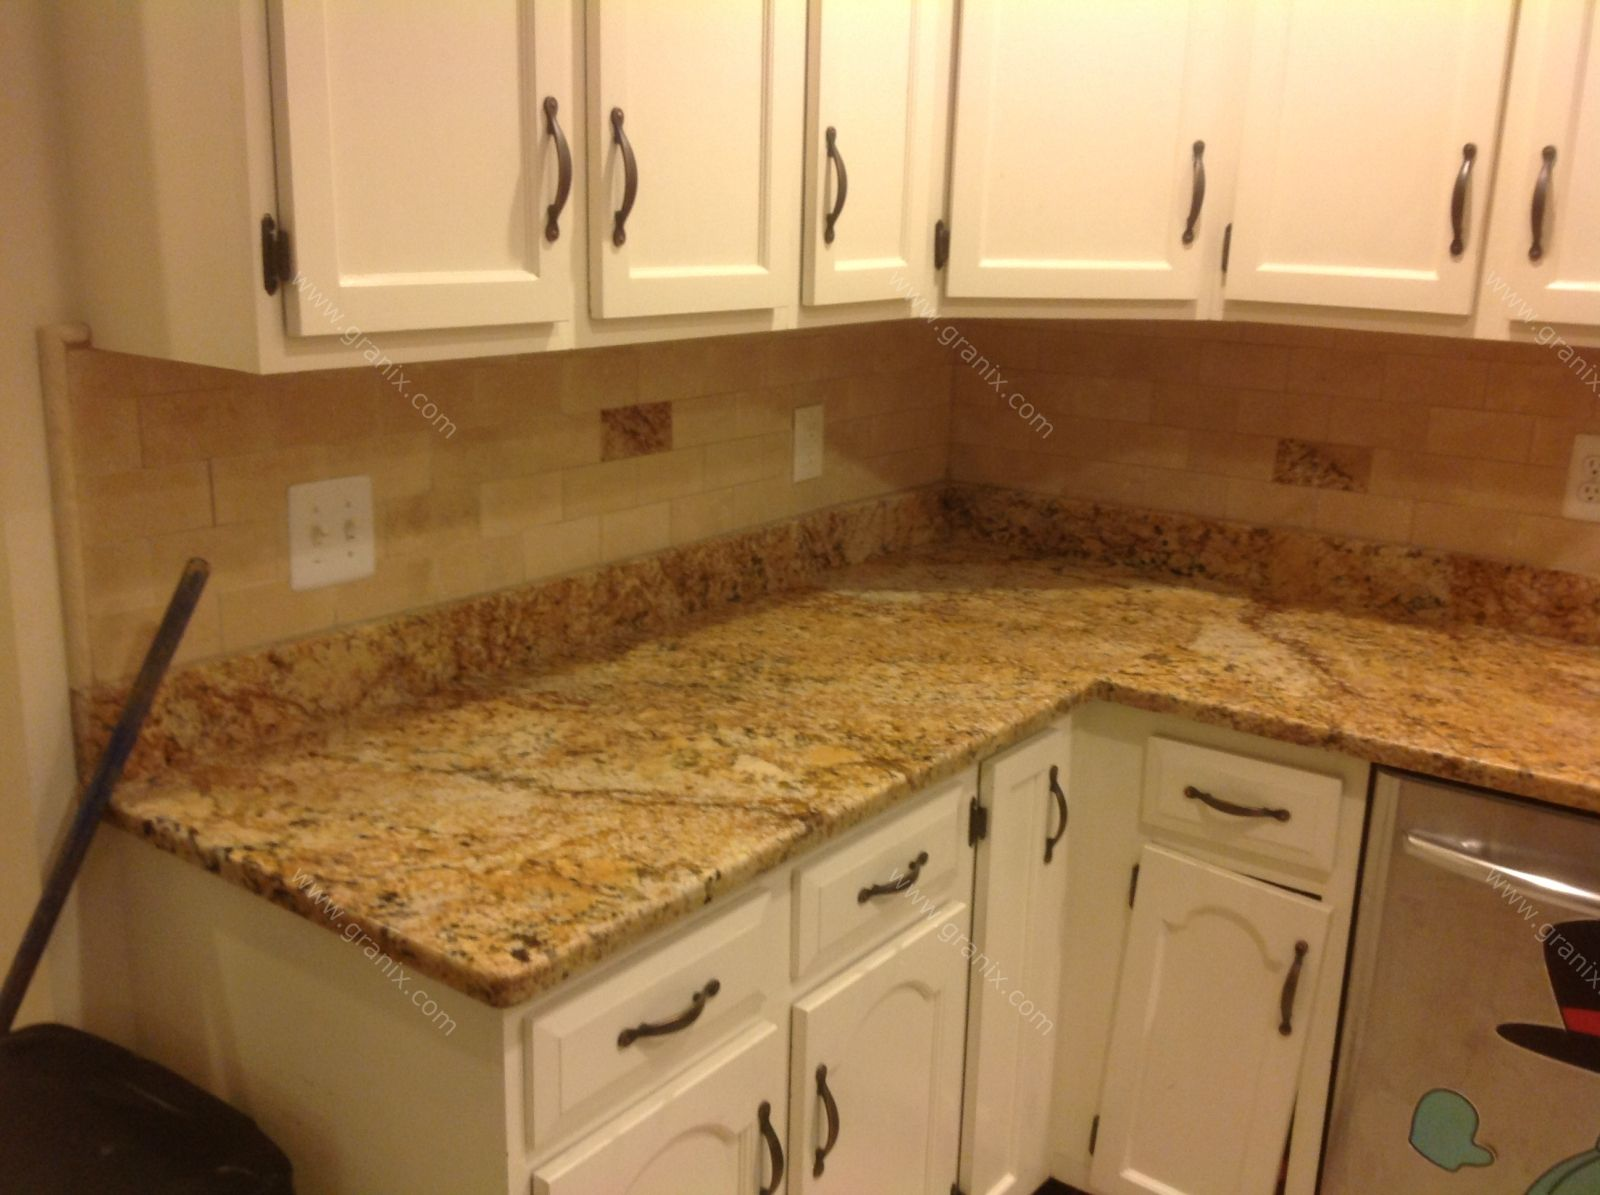 Backsplash Ideas For Granite Countertops Leave A Reply